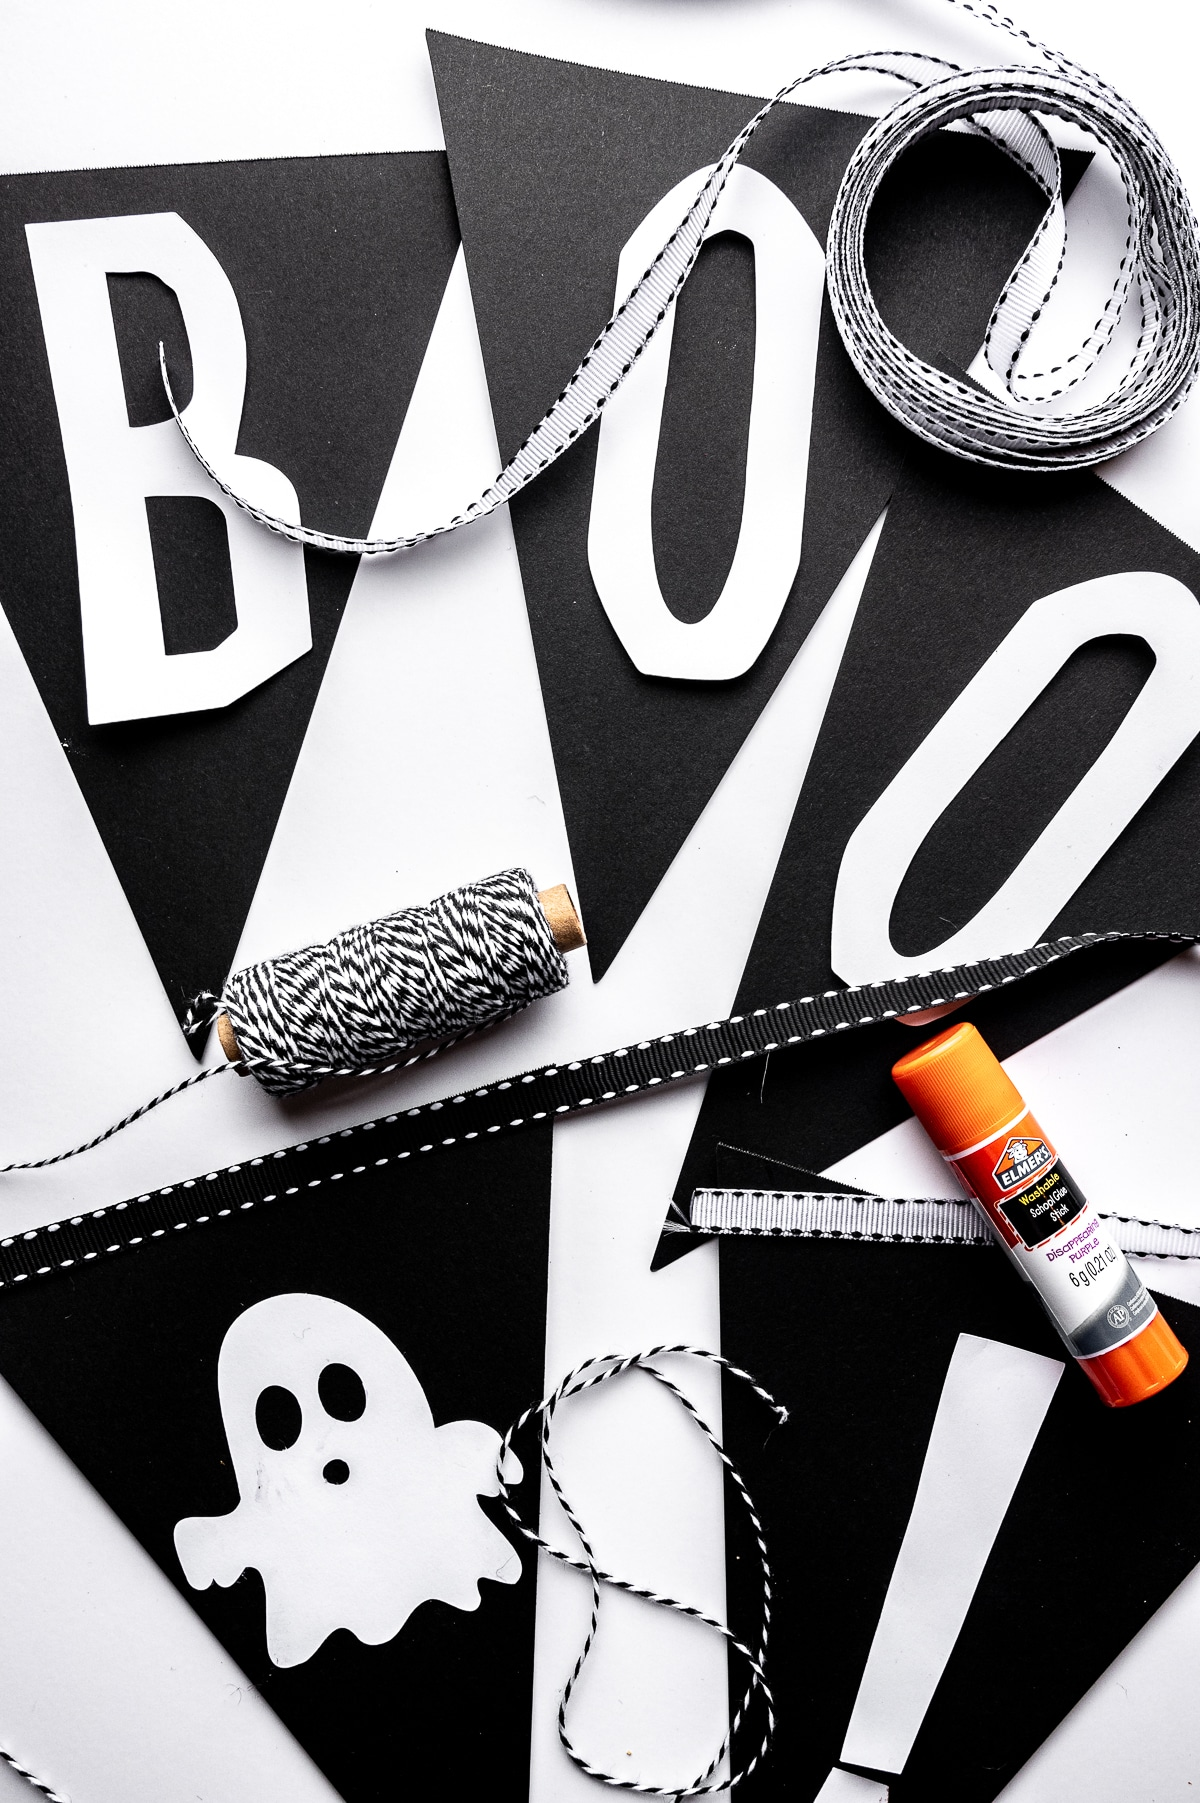 Black cut out triangles with white cut out lettering against a bright white background.  Black butchers twine, white and black ribbon as well as a glue stick surround the cut outs.